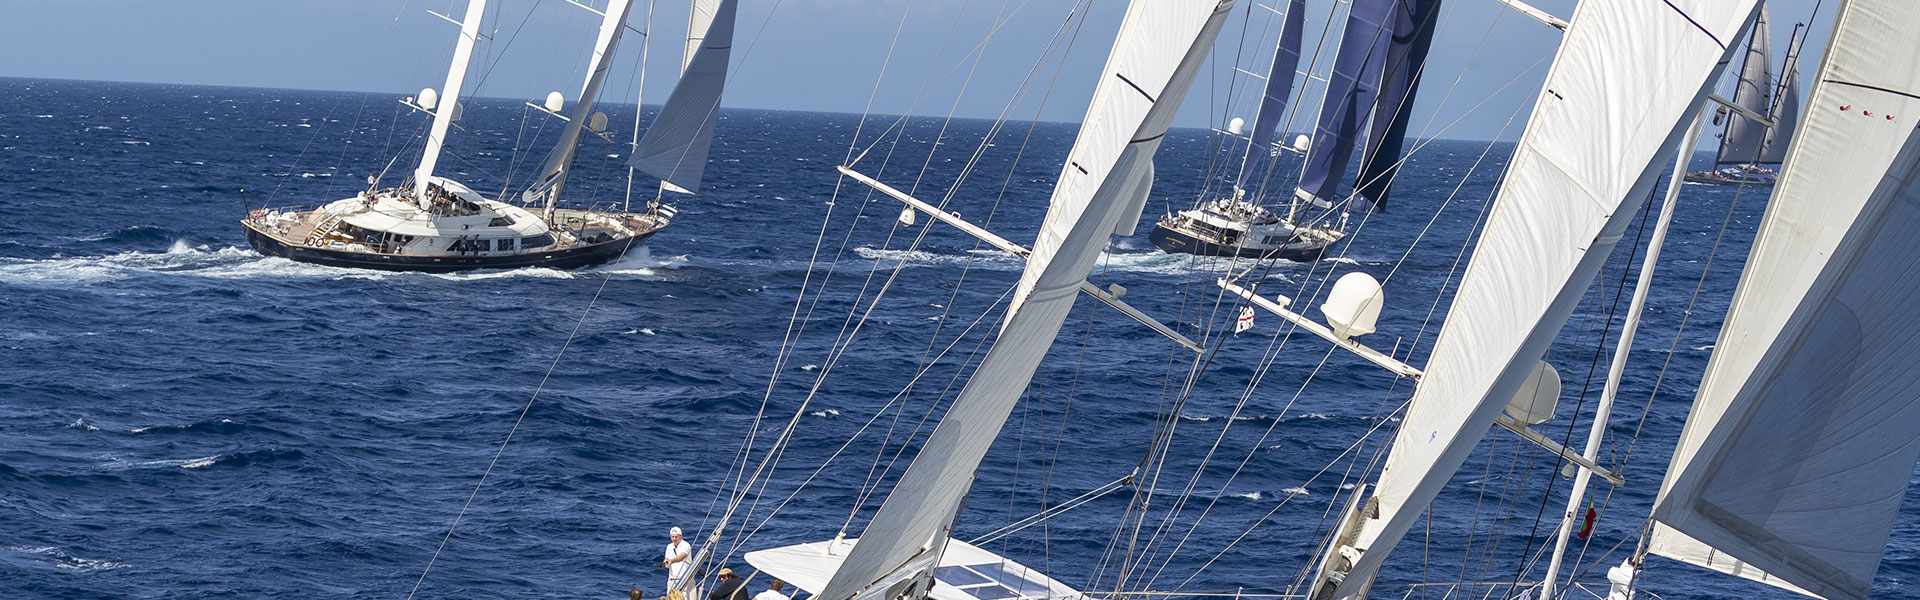 Perini Navi Cup - Postponed until 2021 - Porto Cervo 2020